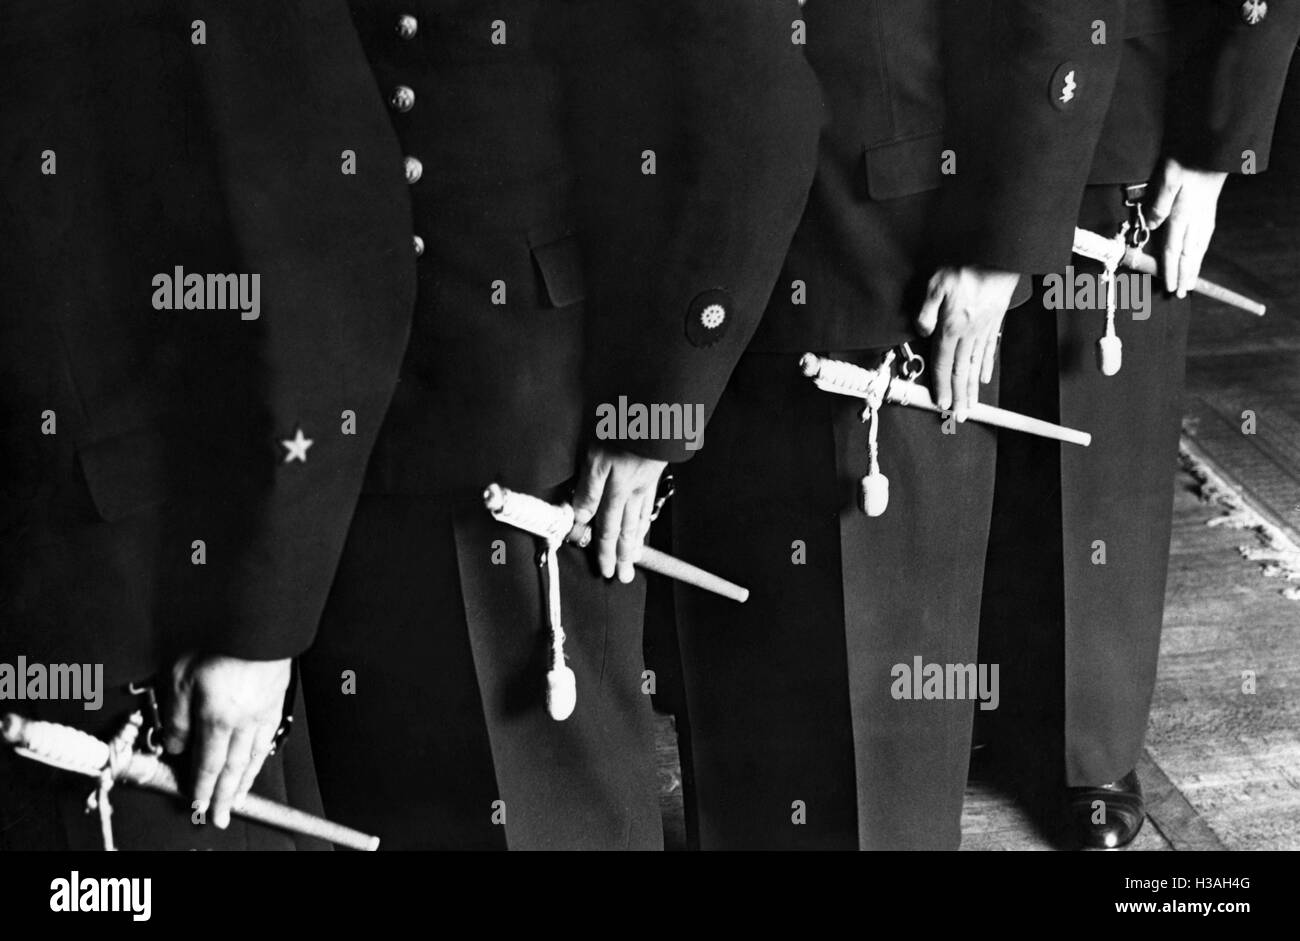 Sleeve insignia of cadets of the Kriegsmarine - Stock Image